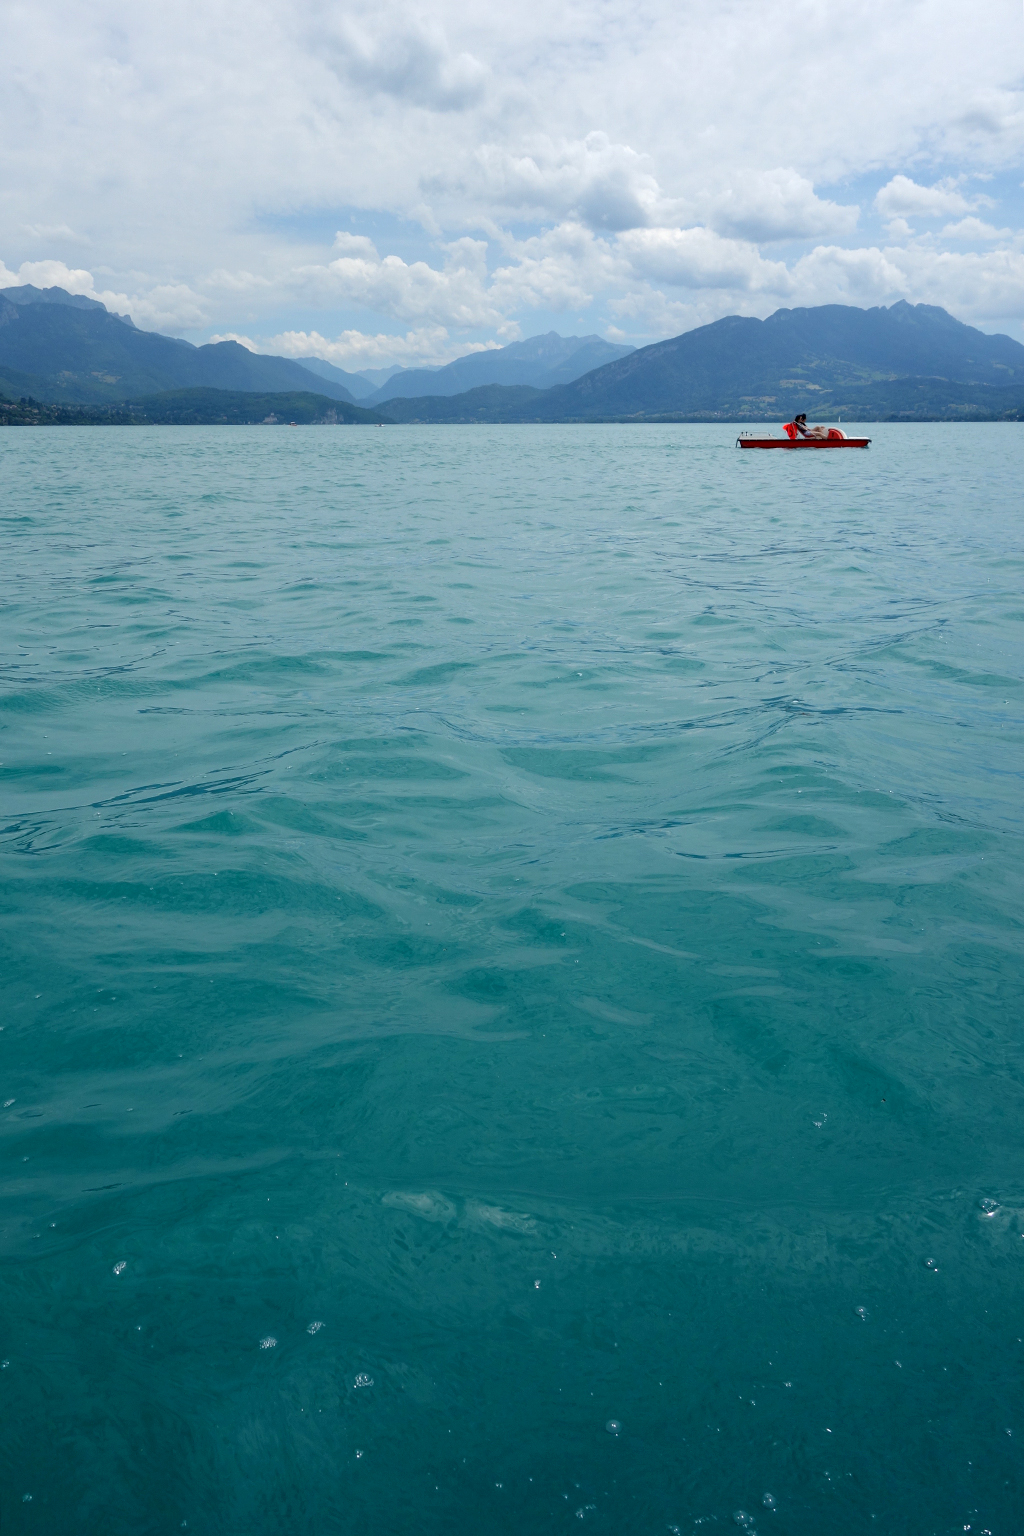 Pedalboats on Lake Annecy